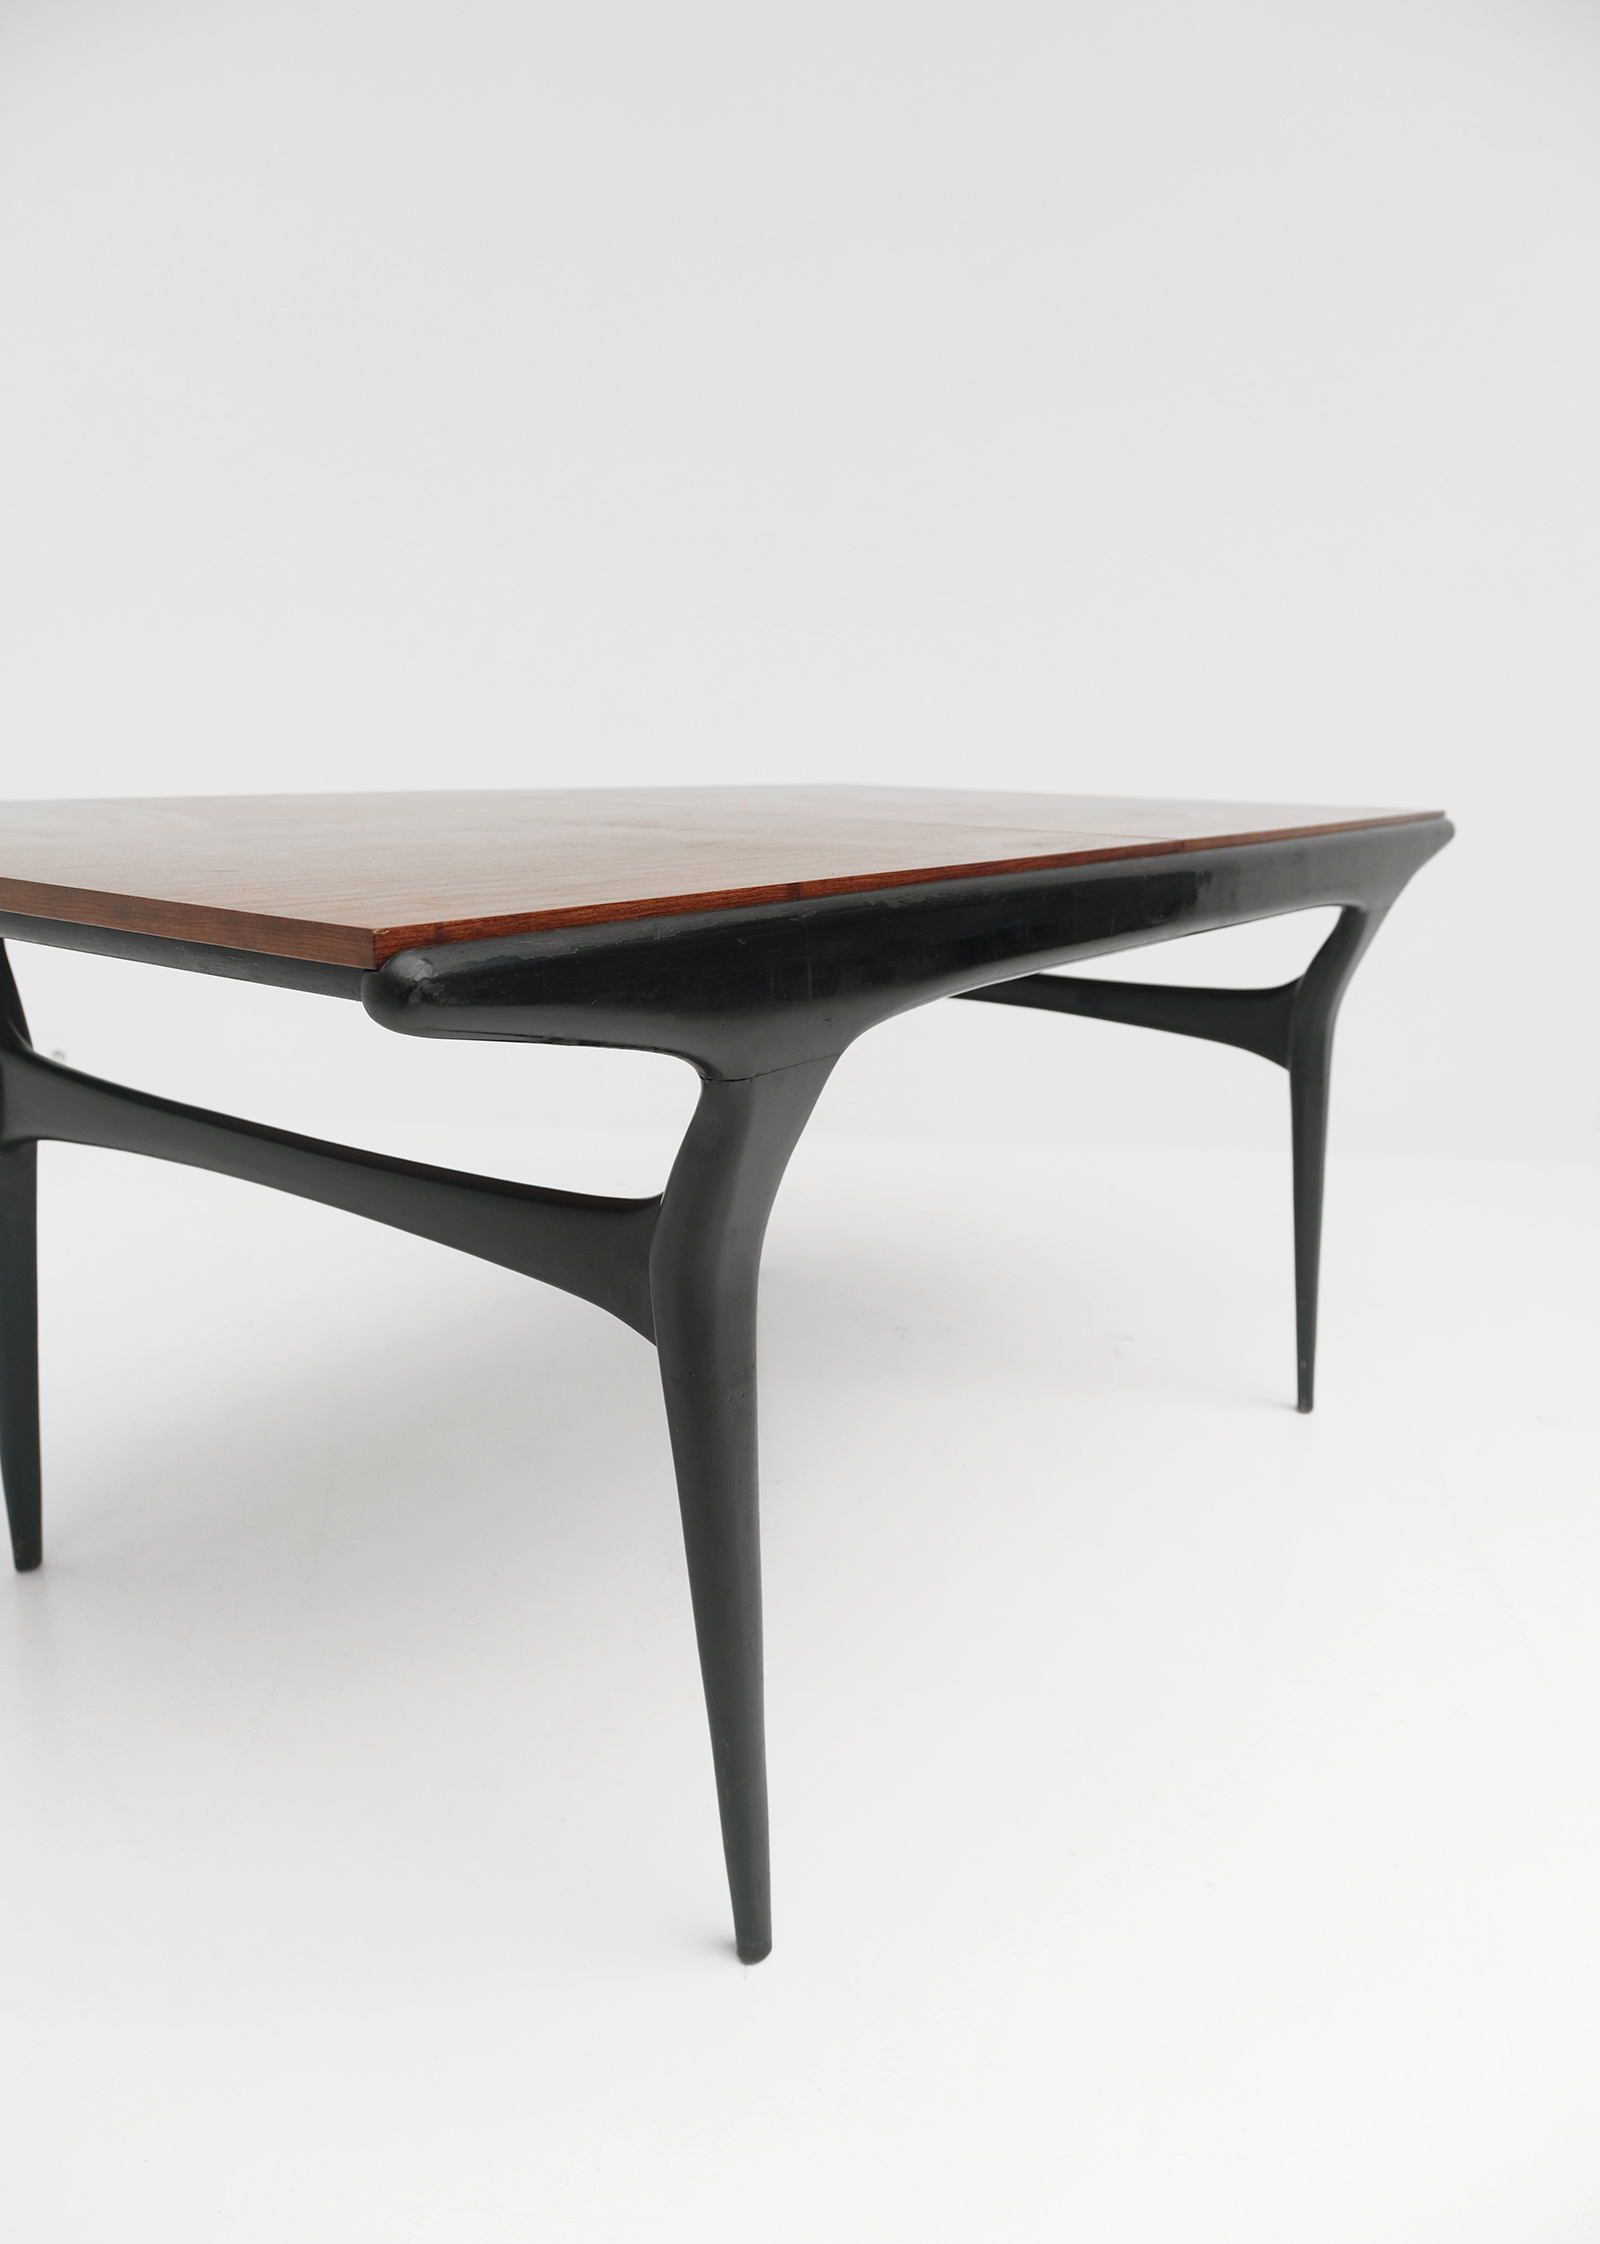 Alfred Hendrickx rare Belform Dining Table 1950simage 8